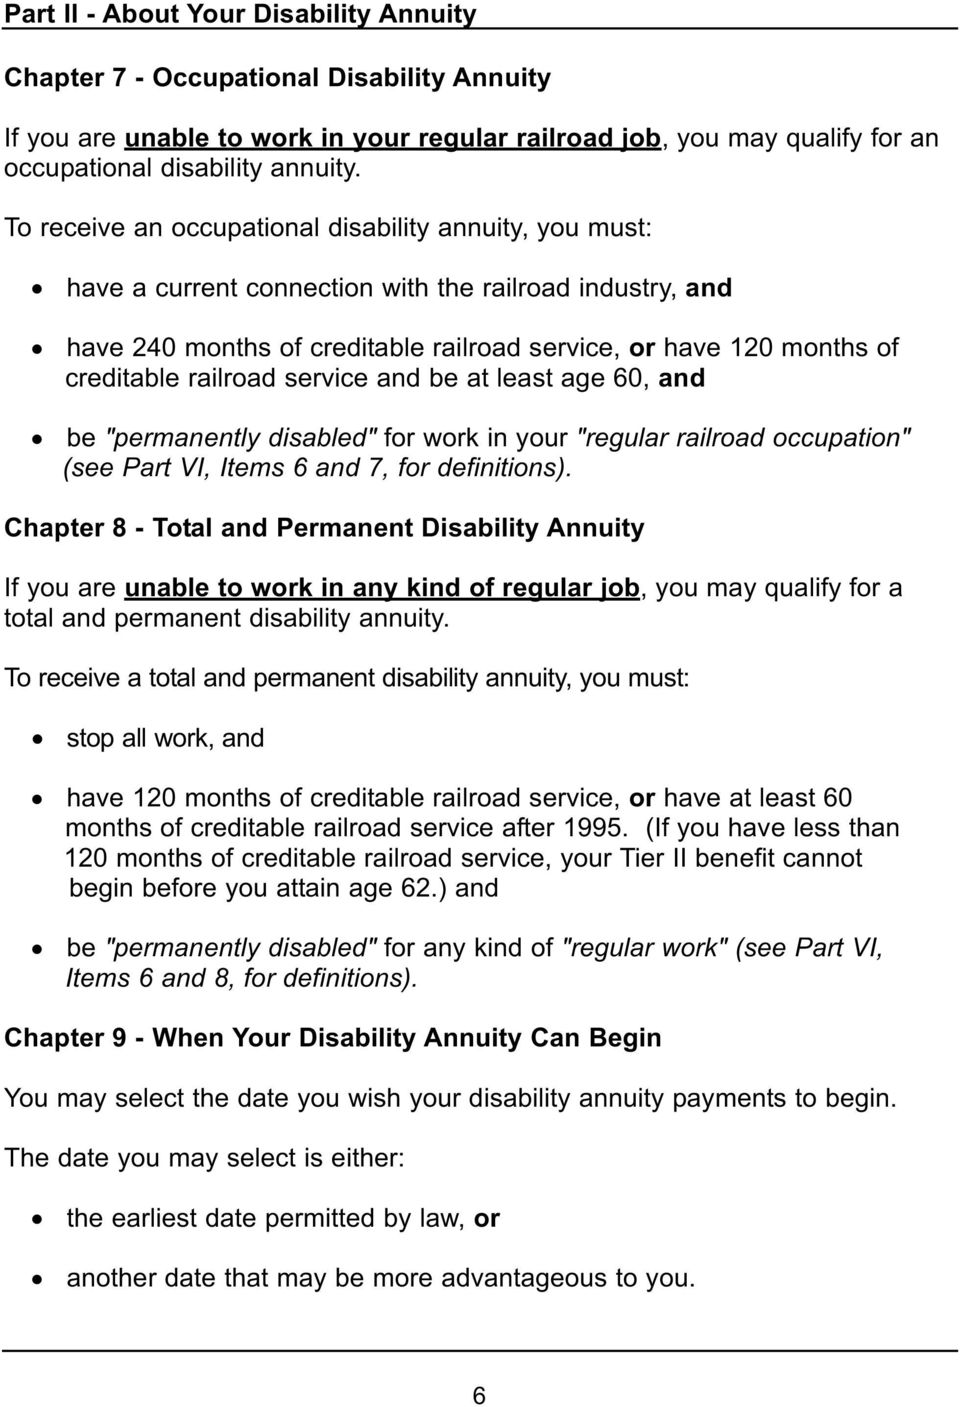 "railroad service and be at least age 60, and be ""permanently disabled"" for work in your ""regular railroad occupation"" (see Part VI, Items 6 and 7, for definitions)."